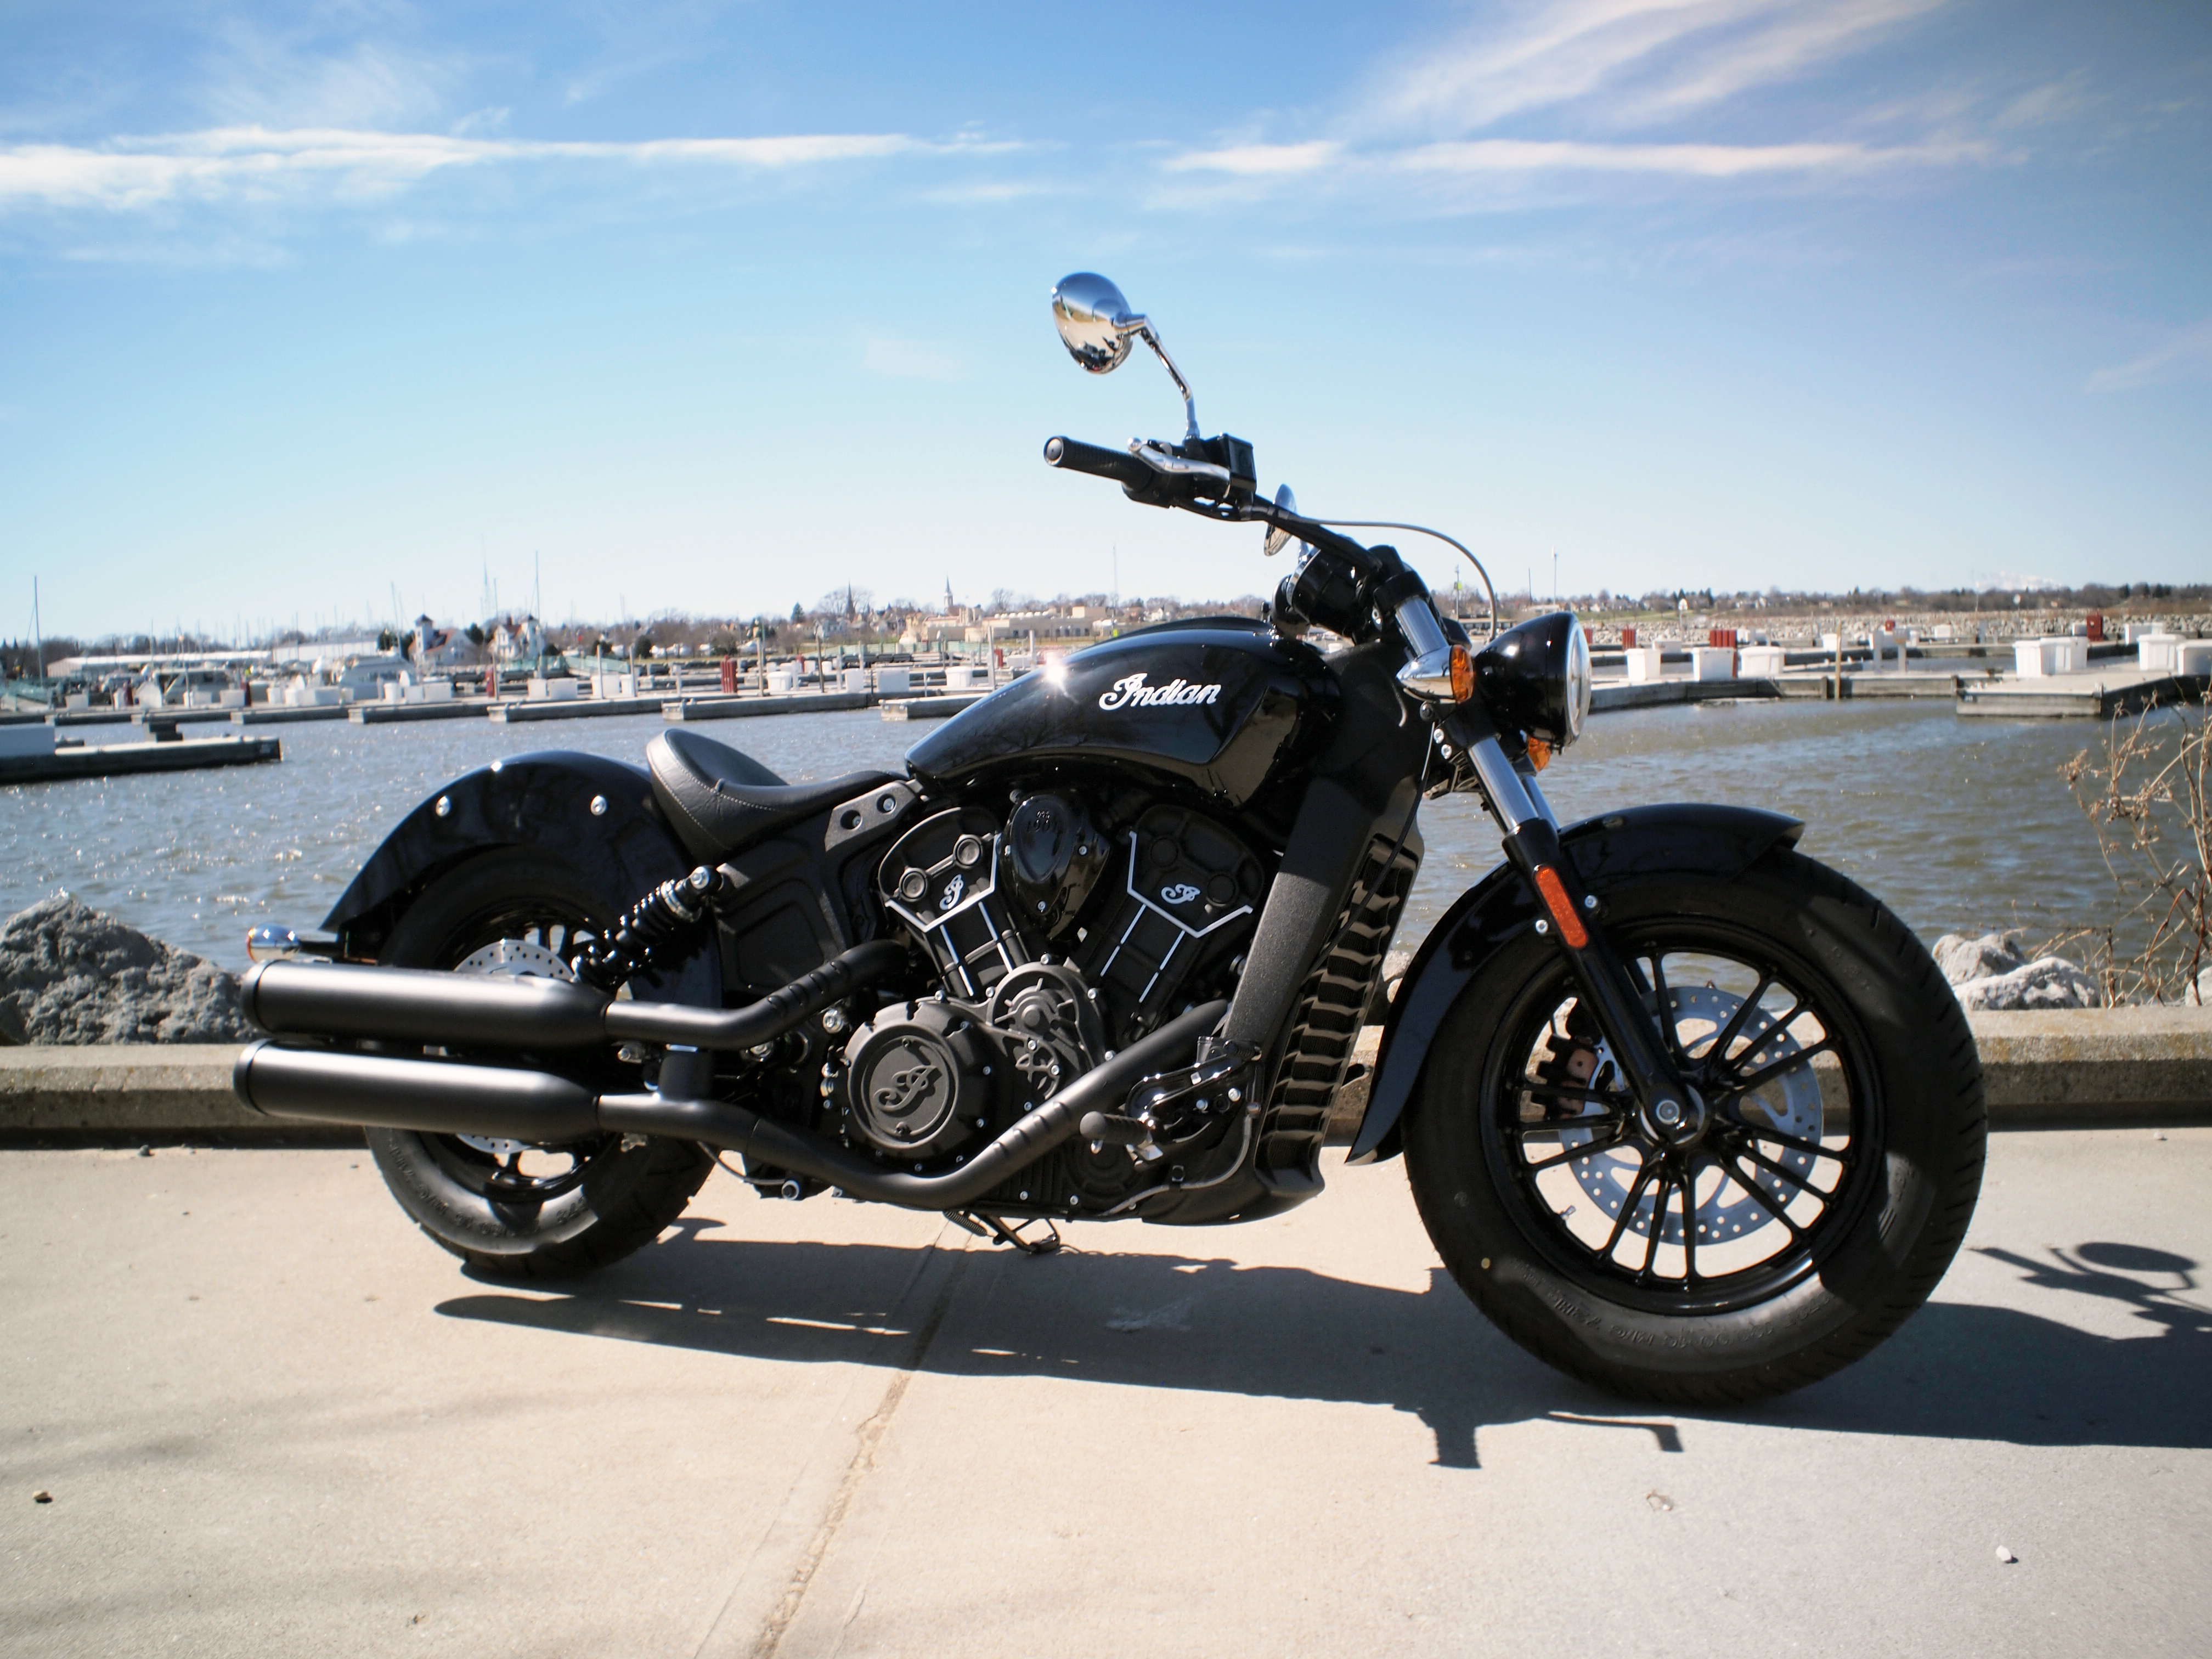 The Winner of the Indian Motorcycle is....